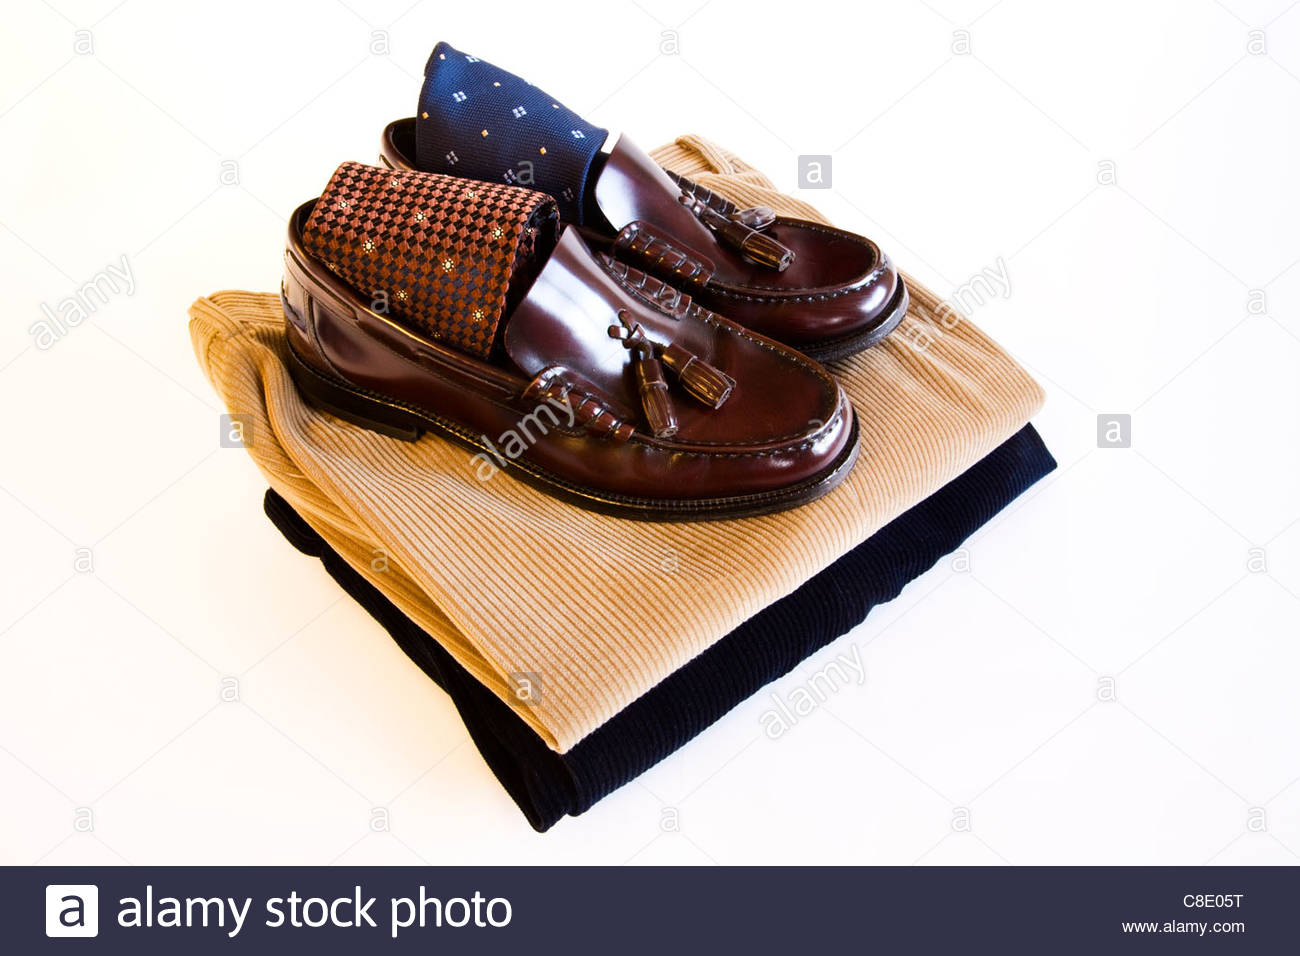 Men's brown polished leather shoes with ties and trousers on white background - Stock Image